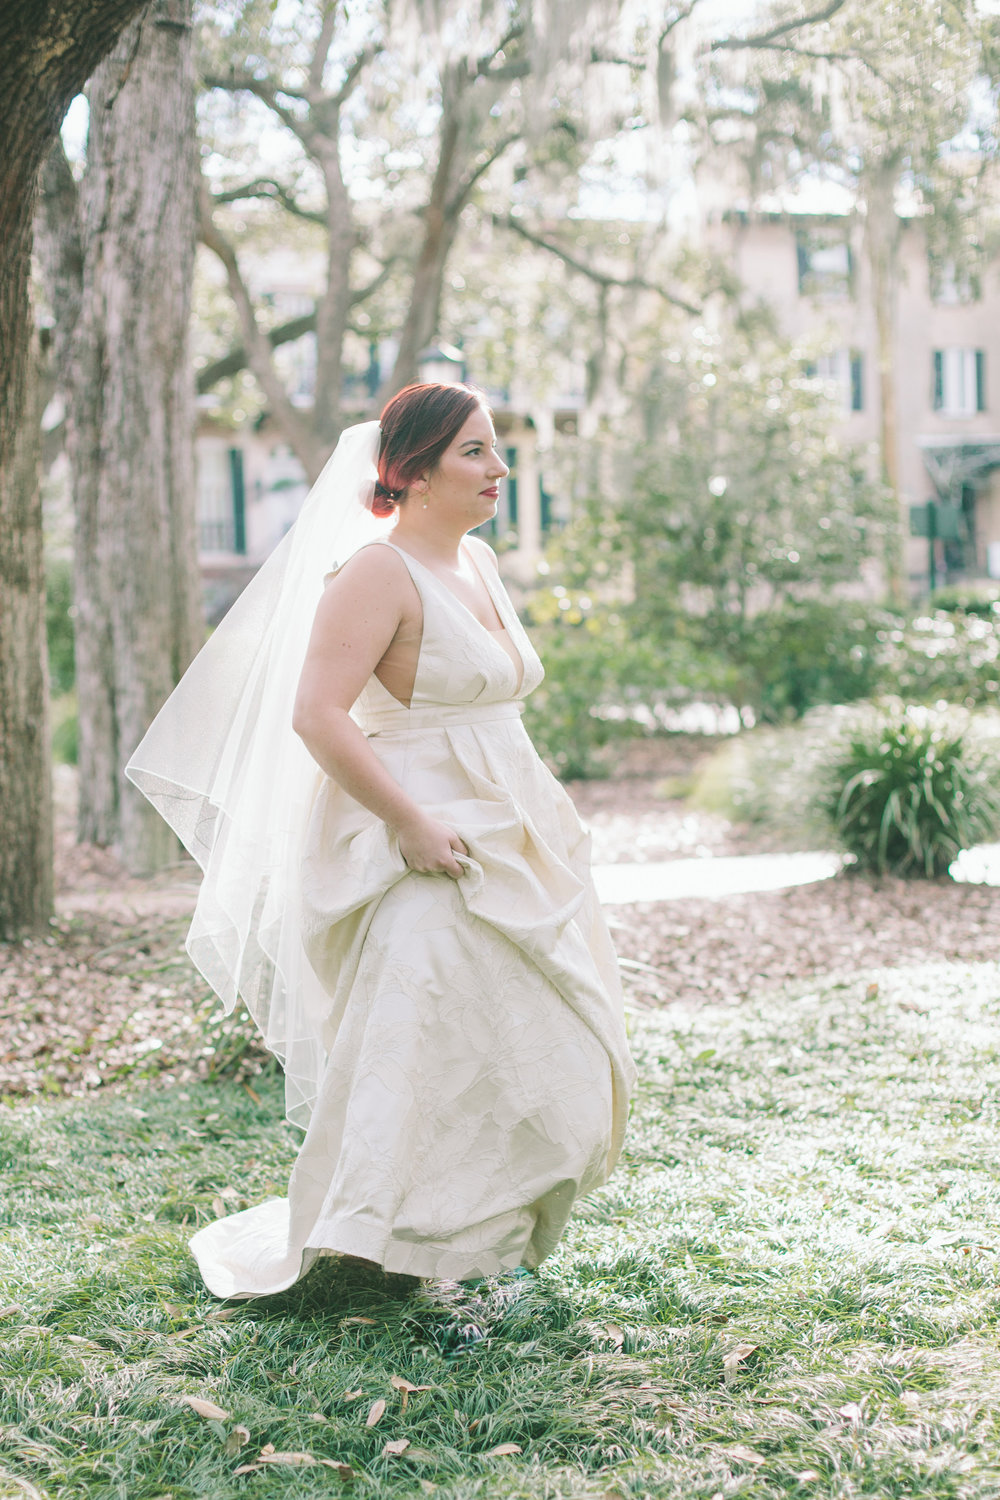 ivory-and-beau-bridal-boutique-jenna-davis-photography-kinsley-rebecca-schoneveld-savannah-bridal-boutique-savannah-bridal-shop-savannah-wedding-dresses-savannah-wedding-photographer-7.jpg